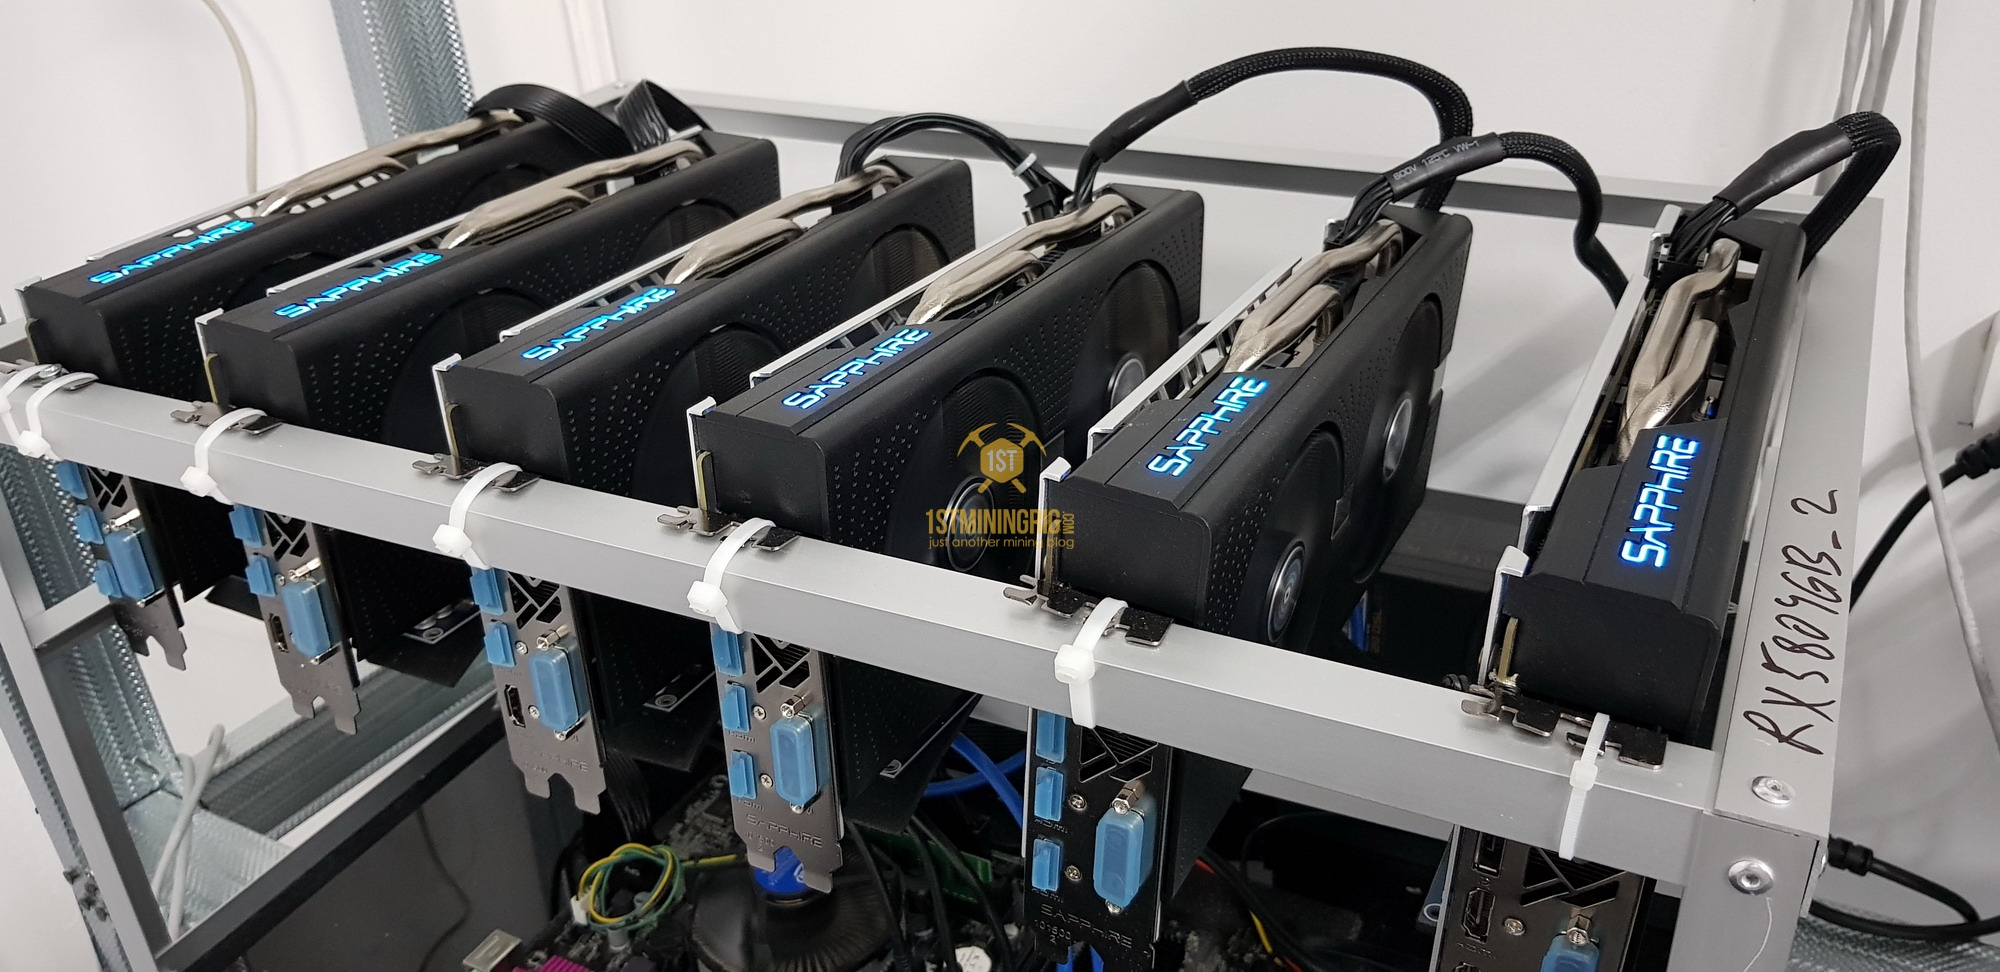 How to Mine Beam With Nvidia and AMD GPU - 1st Mining Rig